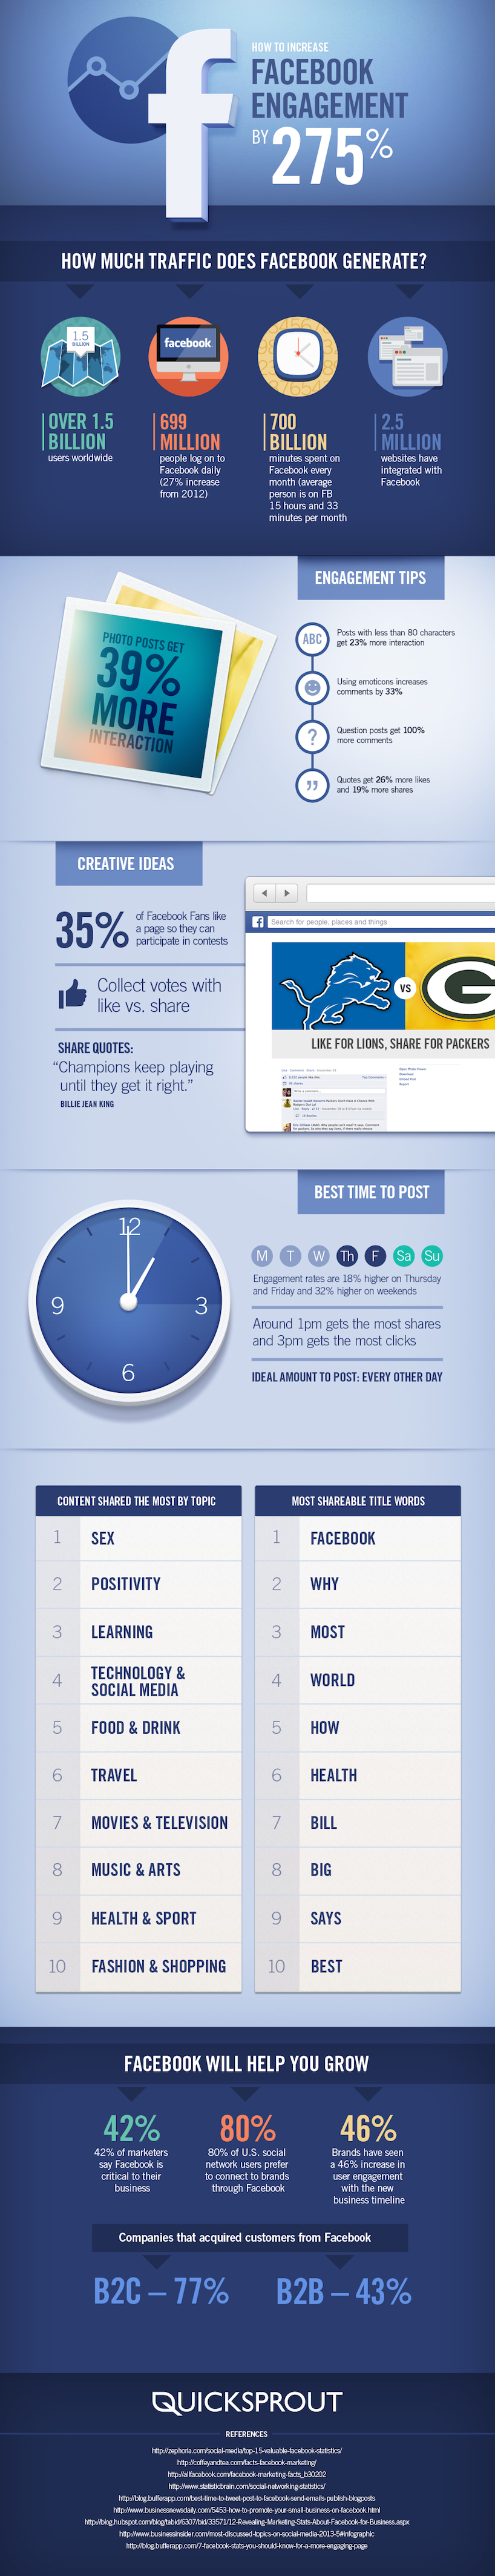 quicksprout - how to increase facebook engagement by 275%